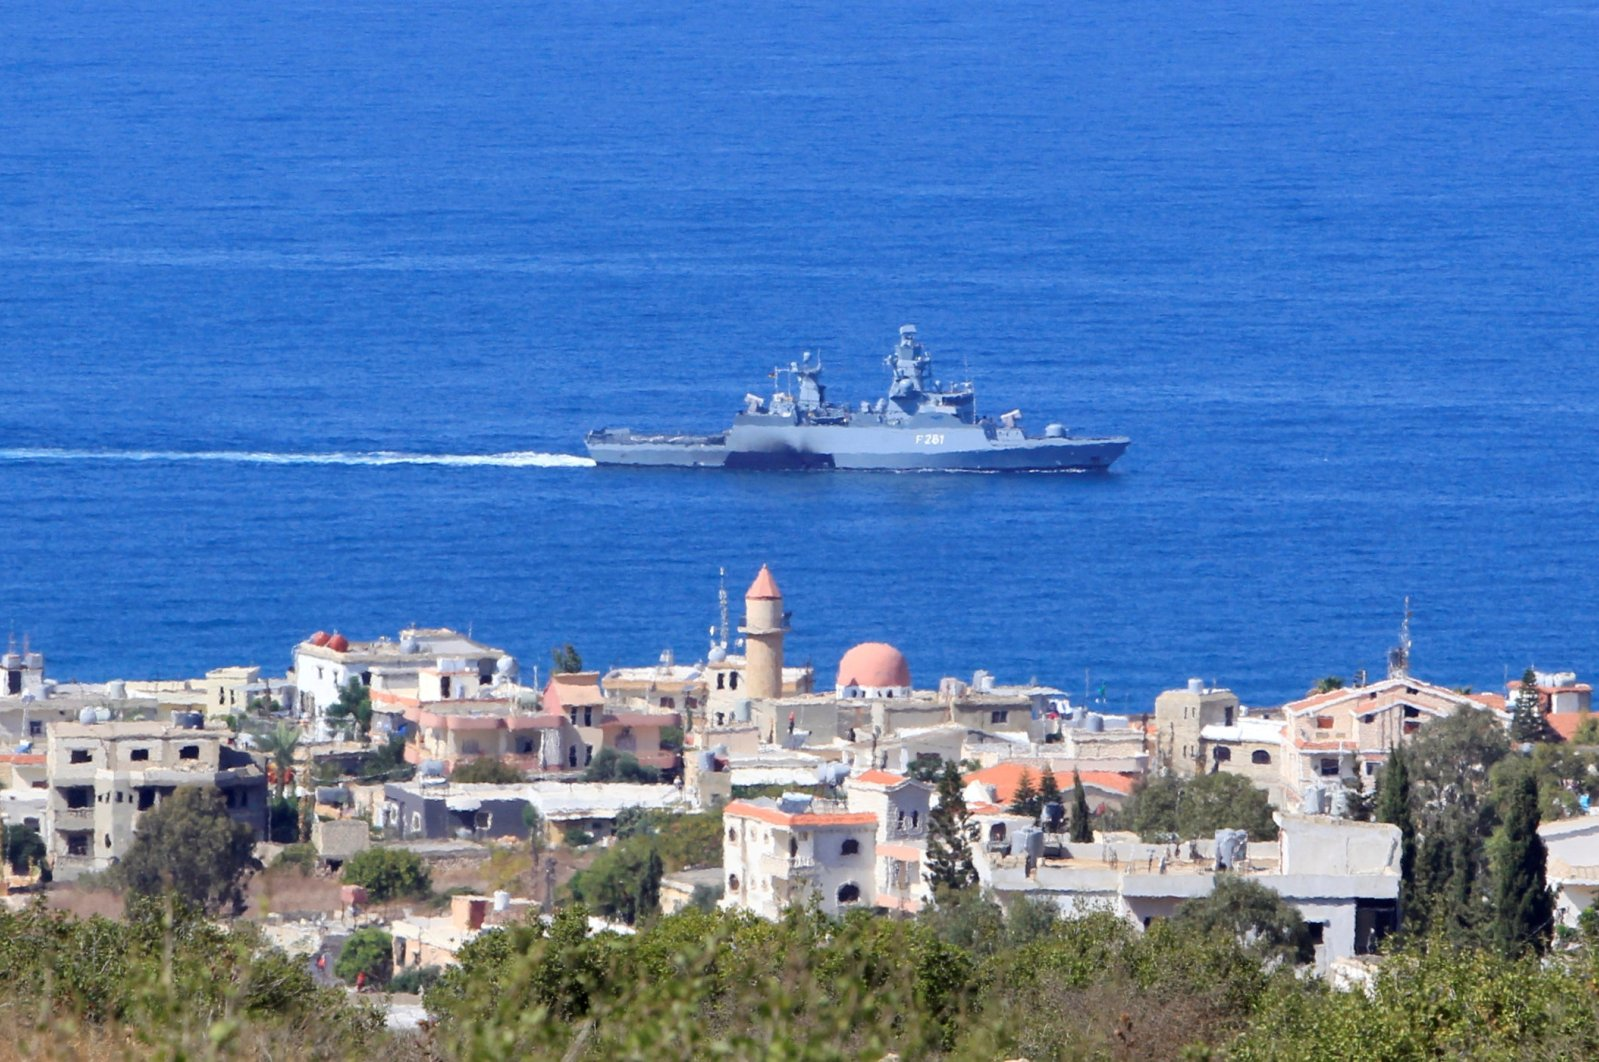 A United Nations naval ship is pictured off the Lebanese coast in the town of Naqoura, near the Lebanese-Israeli border, southern Lebanon, Oct. 14, 2020. (Reuters Photo)